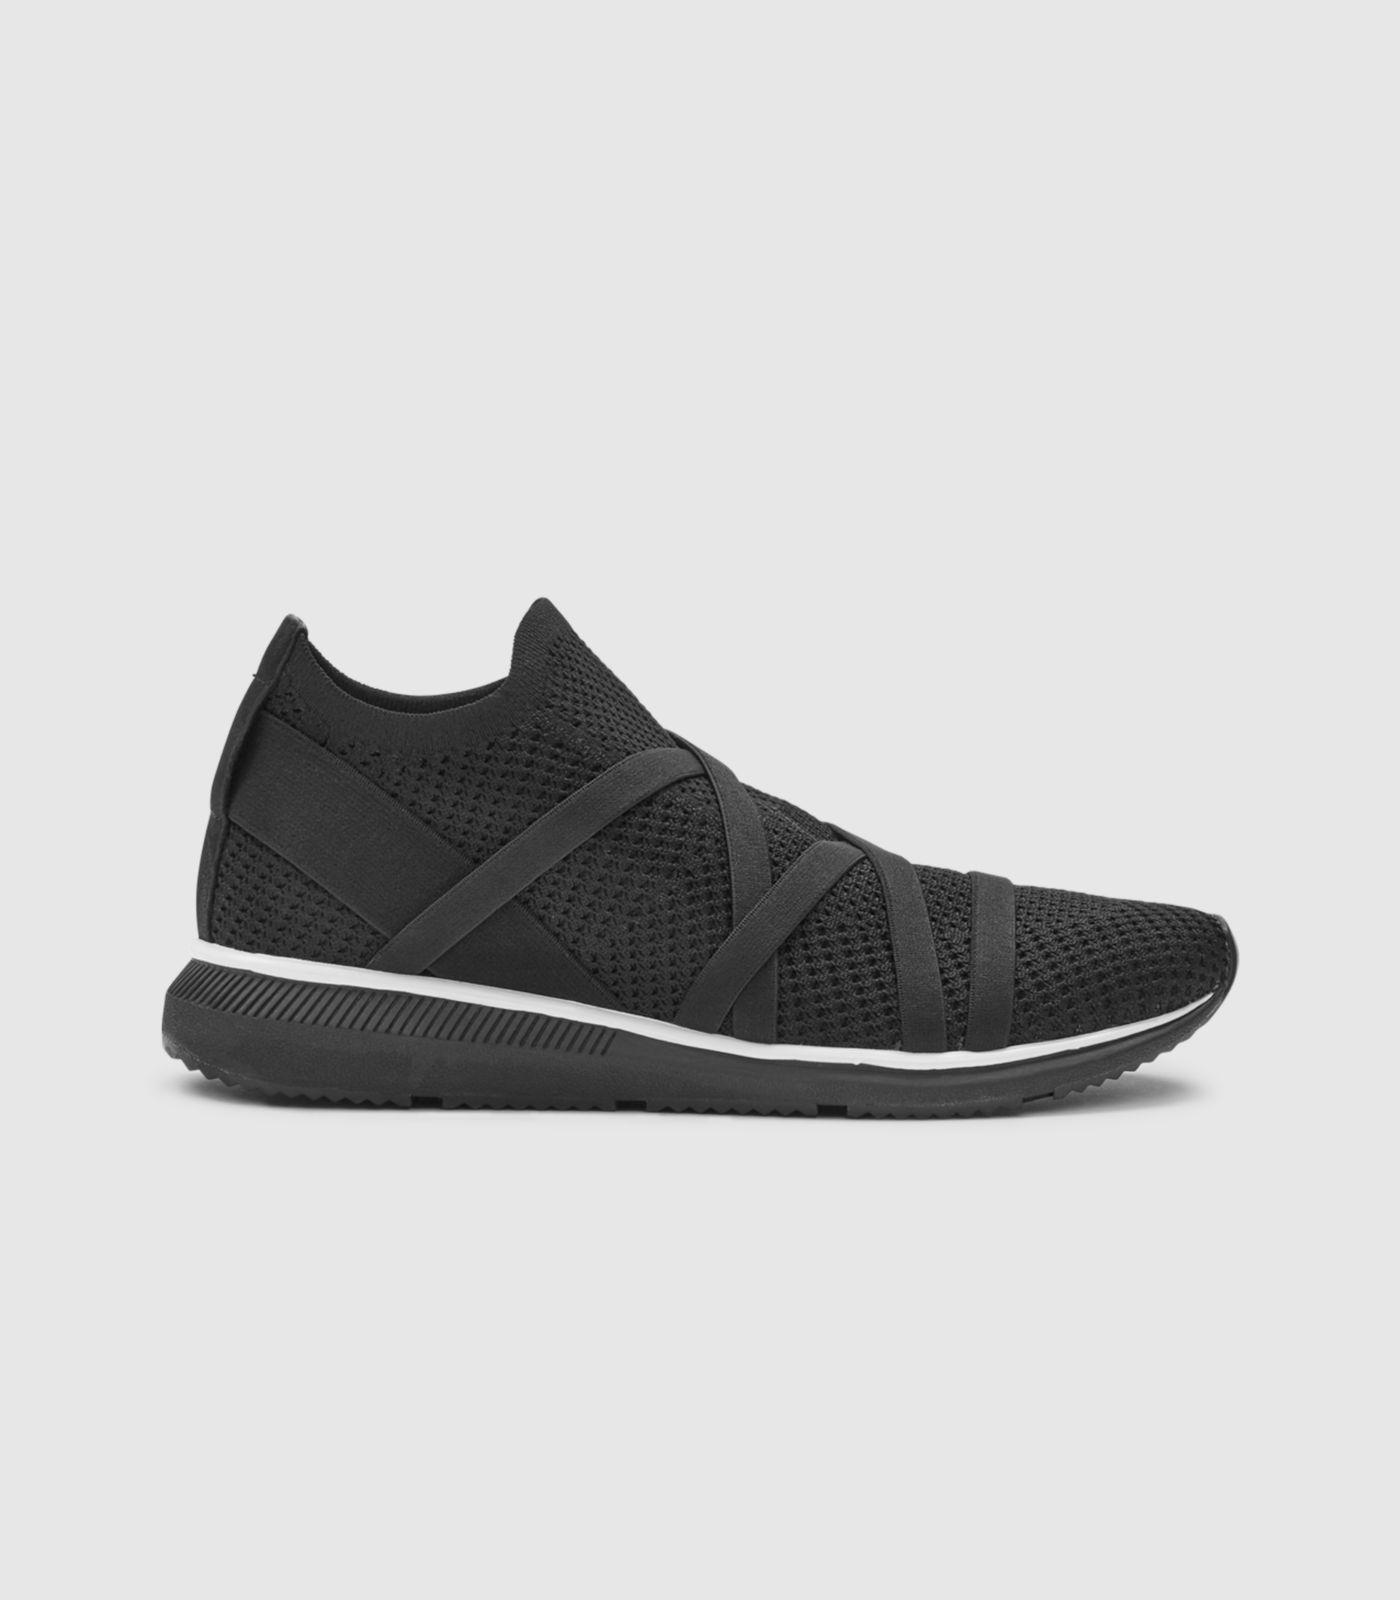 b69514a98caf Lyst - Eileen Fisher Xanady Sustainable Mesh Sneaker in Black